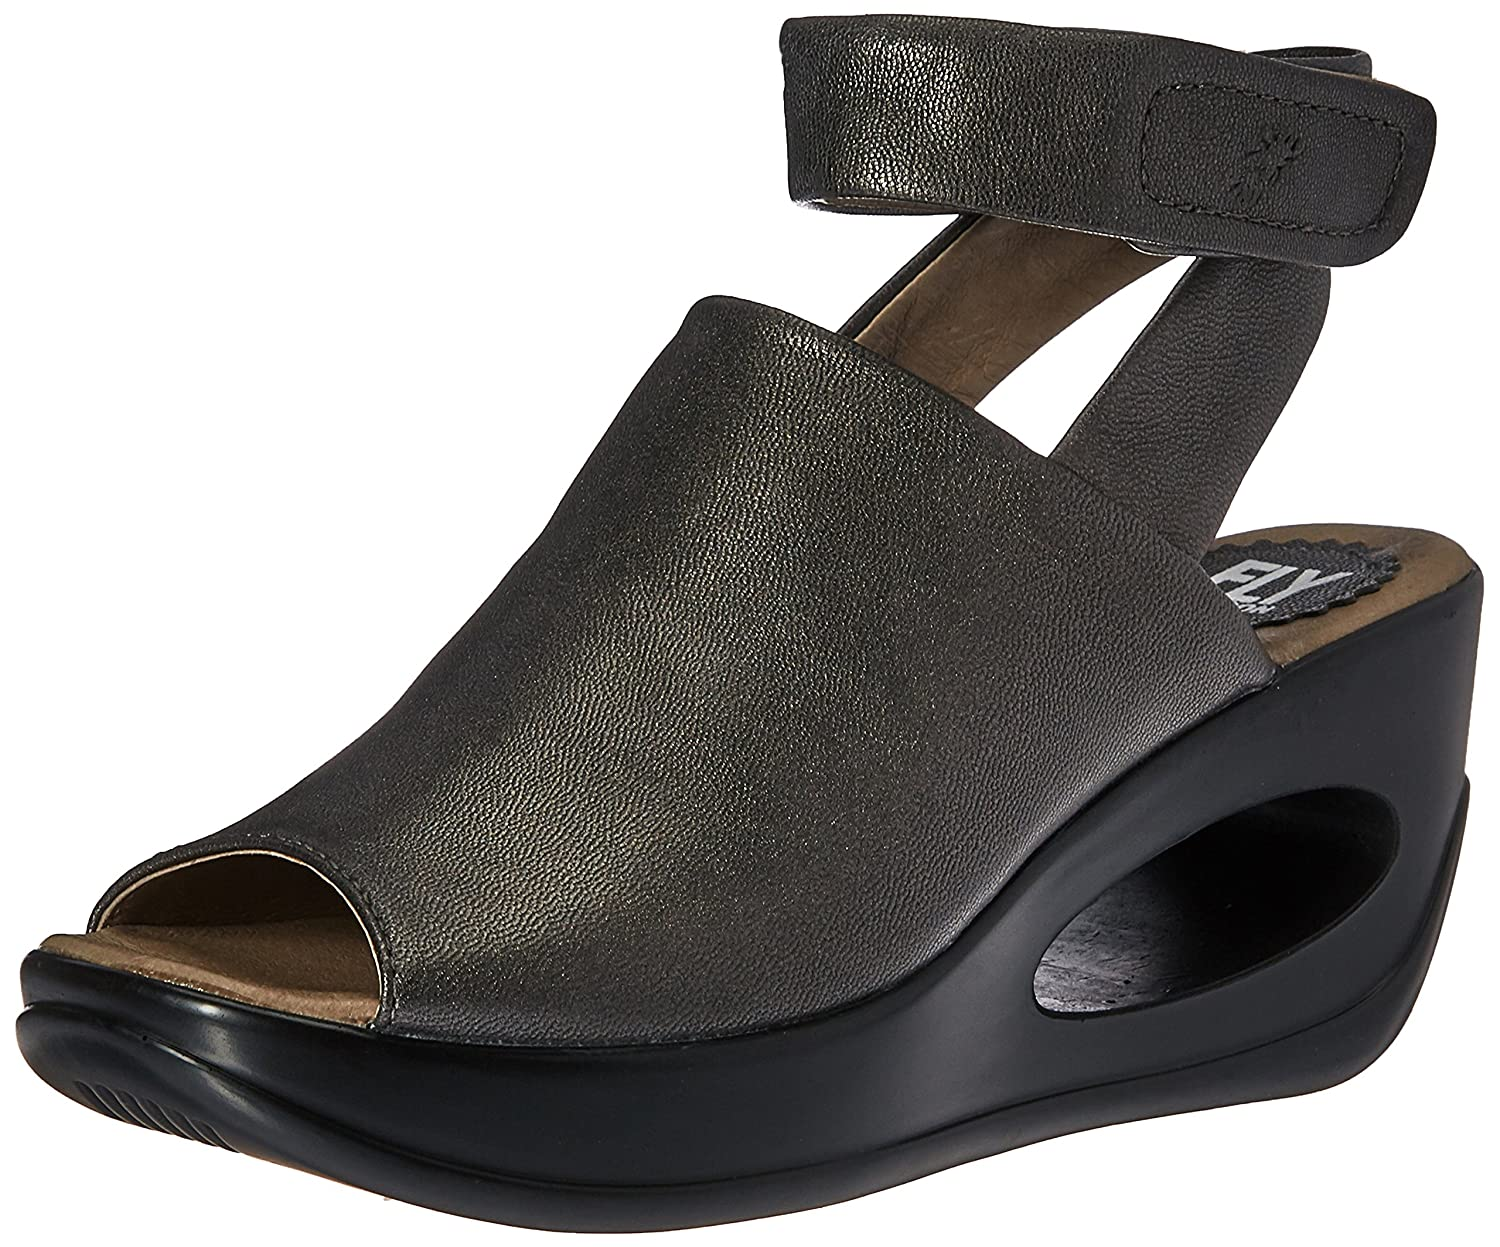 FLY London Women's Hini892fly Wedge Sandal B01M3NVQL2 39 EU/8-8.5 M US|Graphite Borgogna